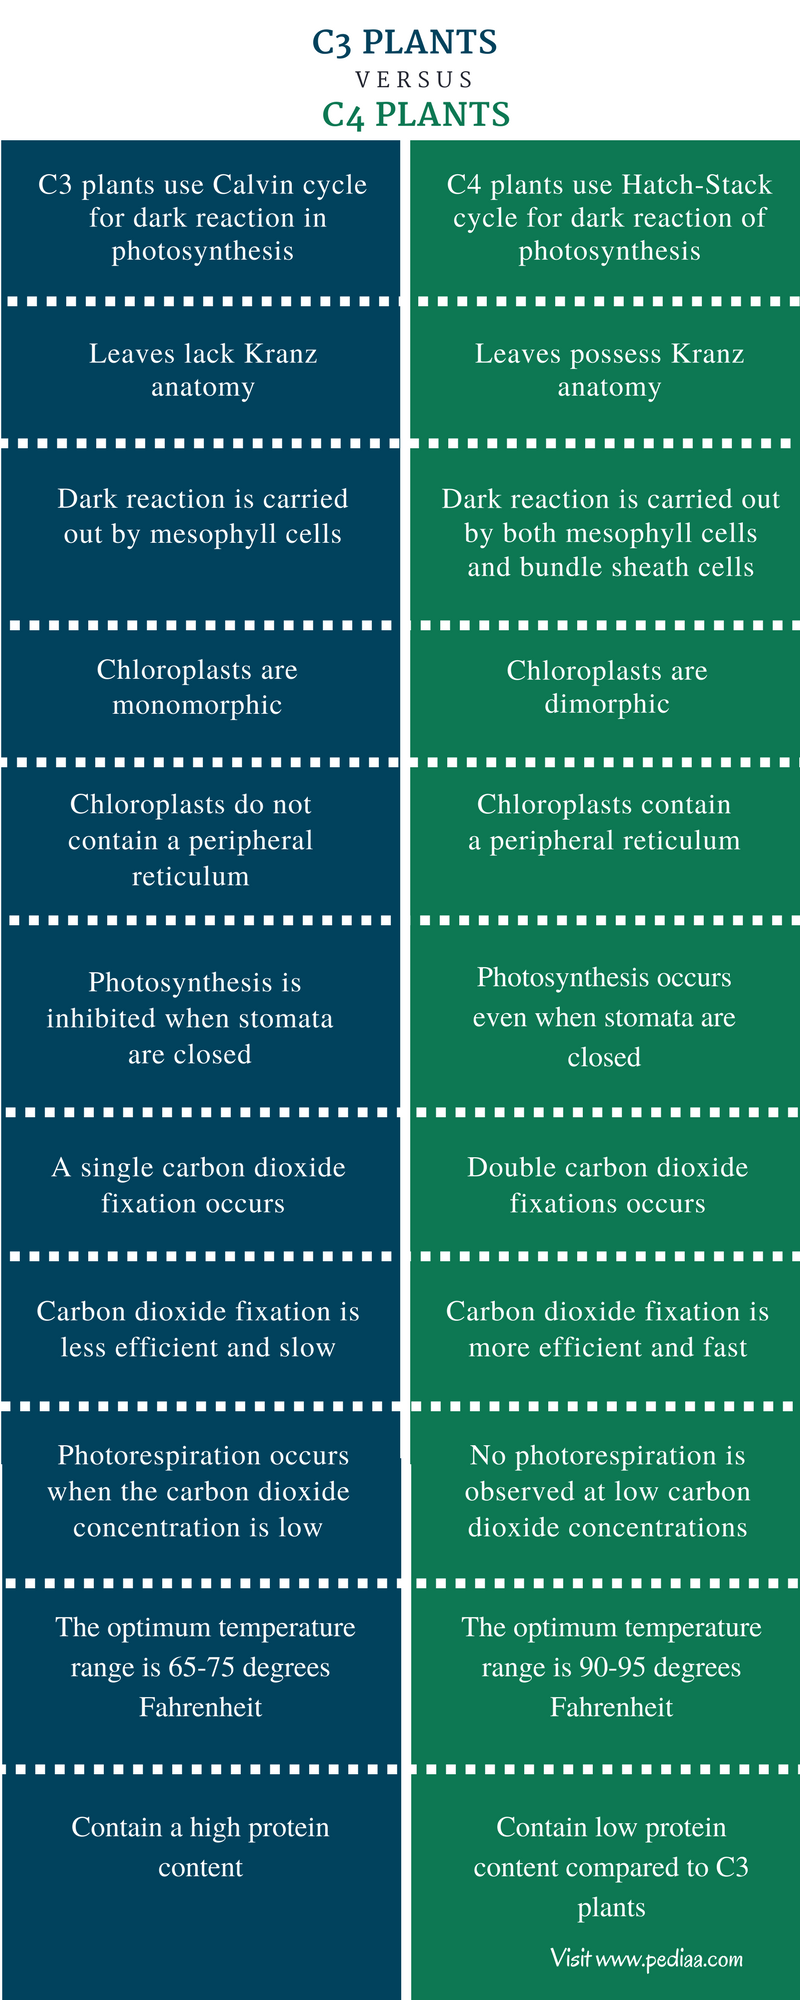 Difference Between C3 and C4 Plants - Comparison Summary